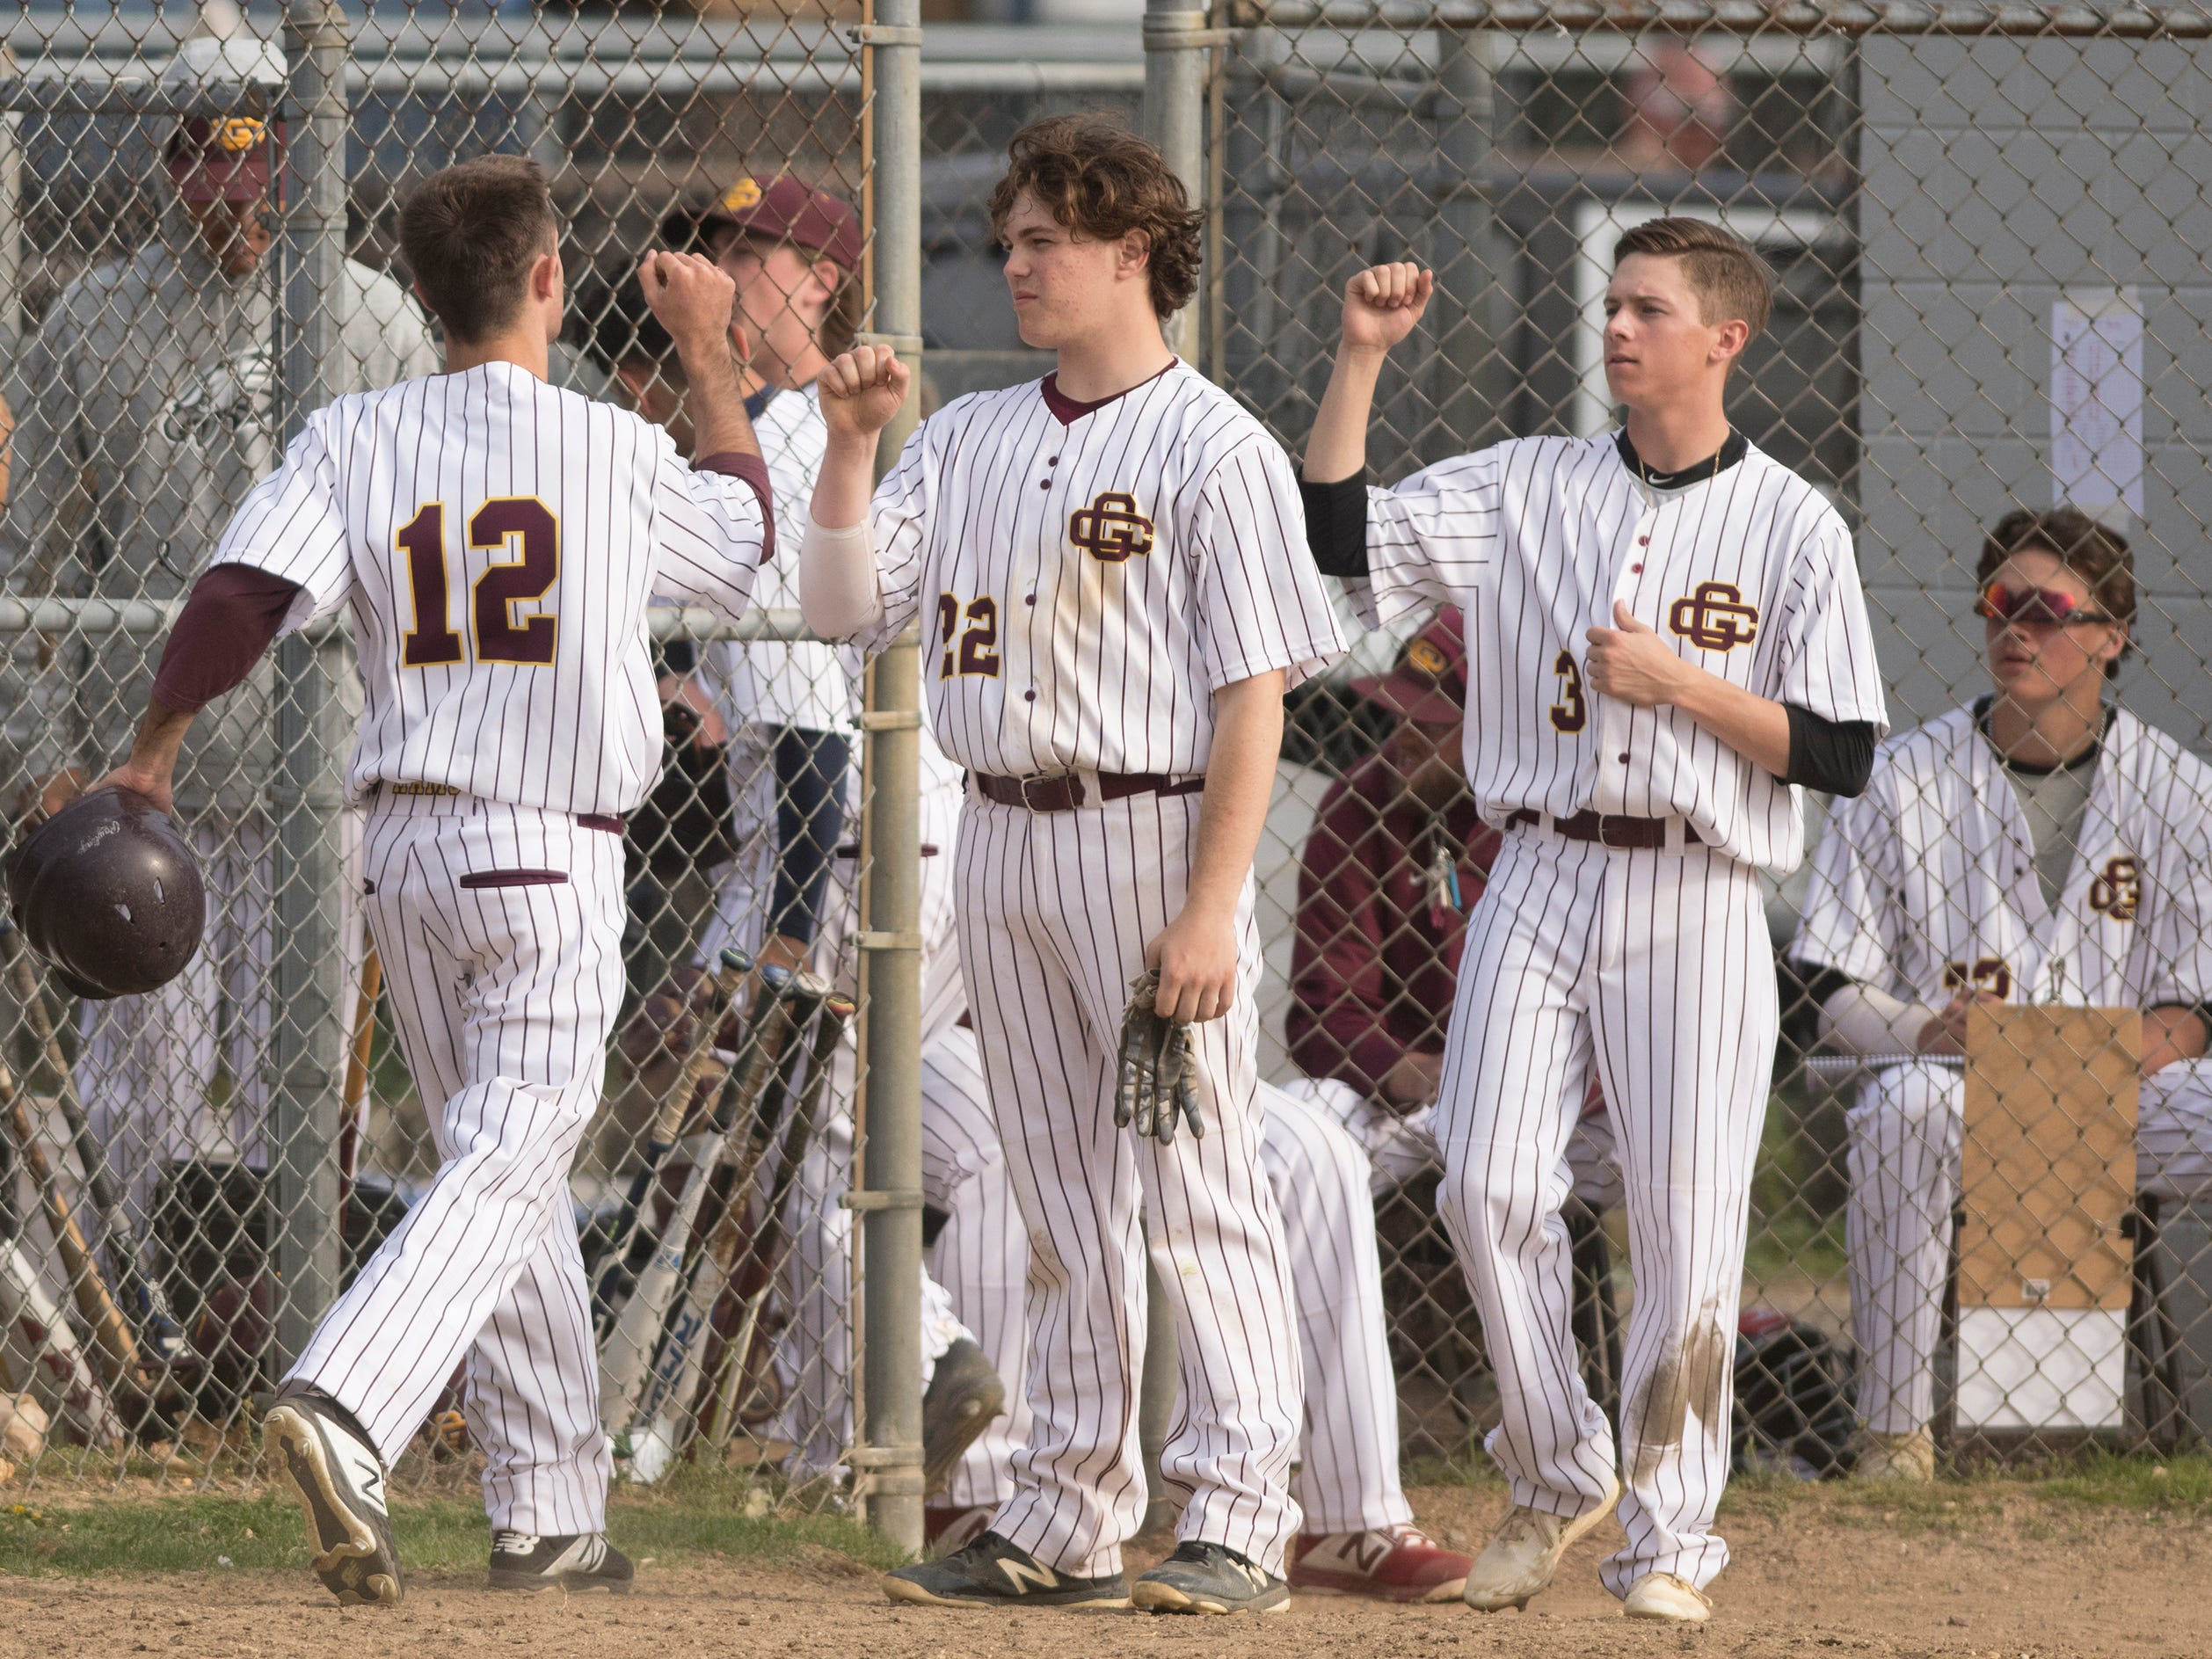 The Gloucester Catholic baseball team defeated Pennsville, 13- 0, at Joe Barth Field in Brooklawn on Wednesday, April 17, 2019.